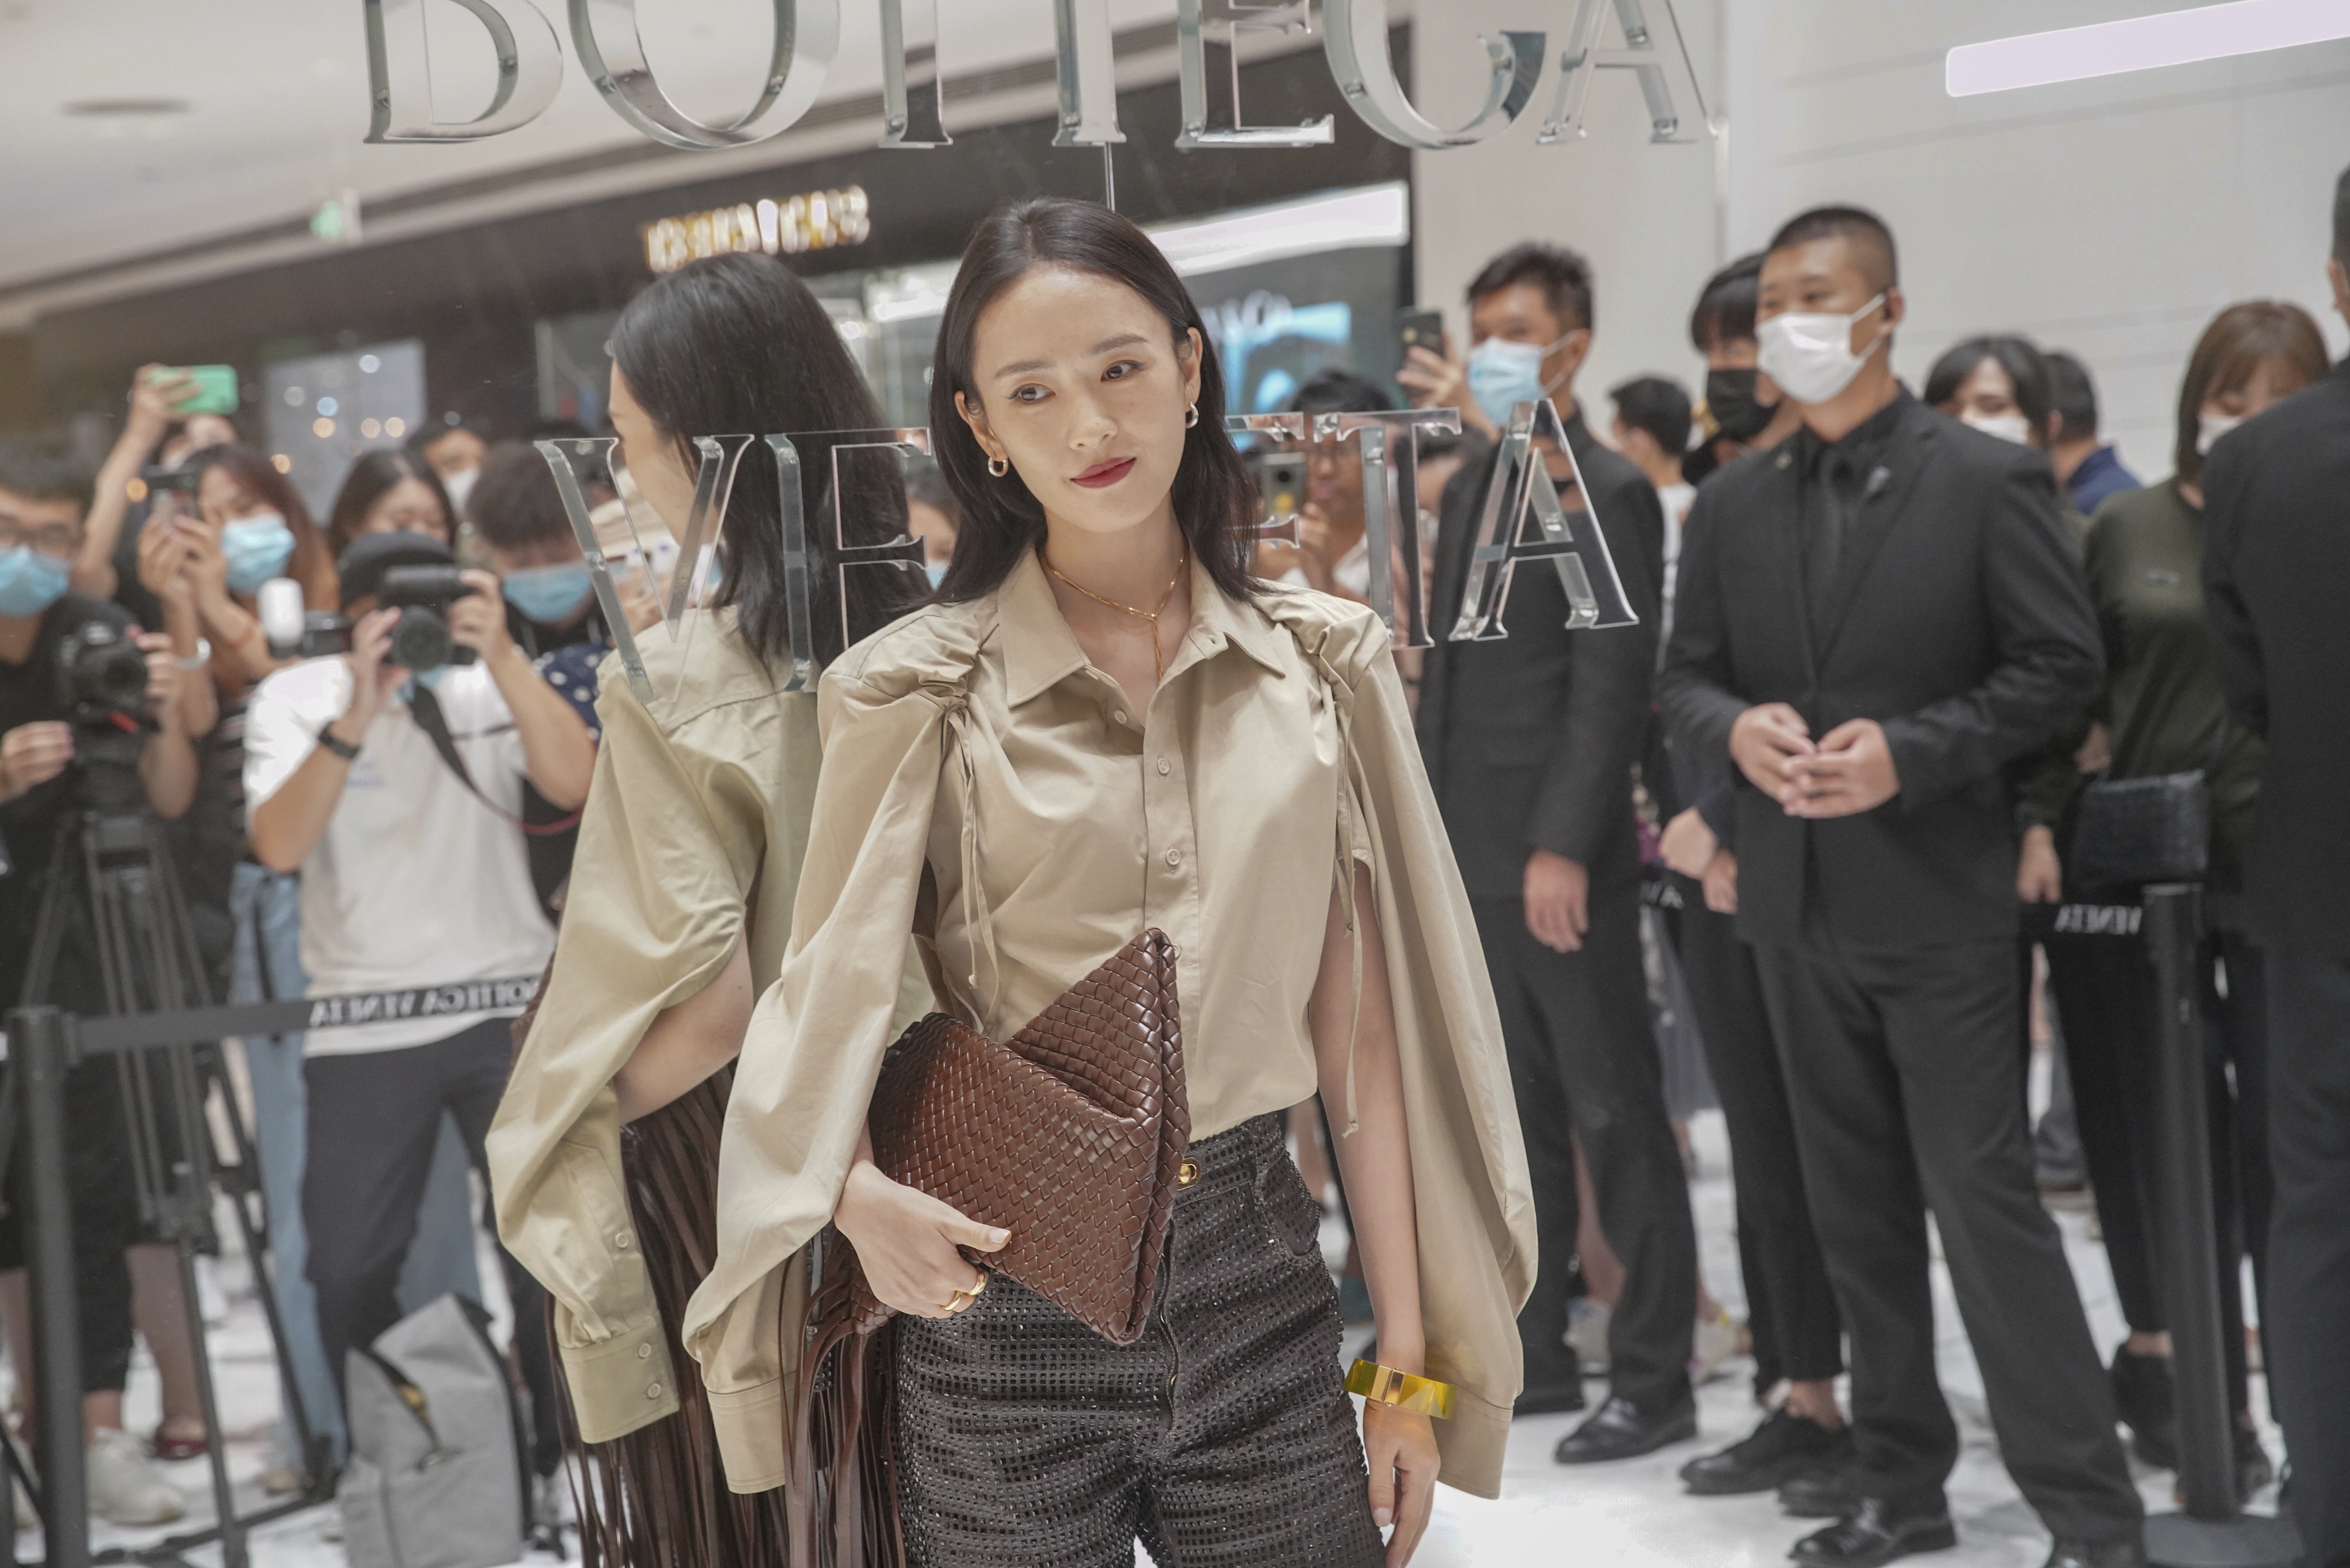 Chinese actress Tong Yao attends the opening ceremony of Bottega Veneta pop up in SKP Beijing.